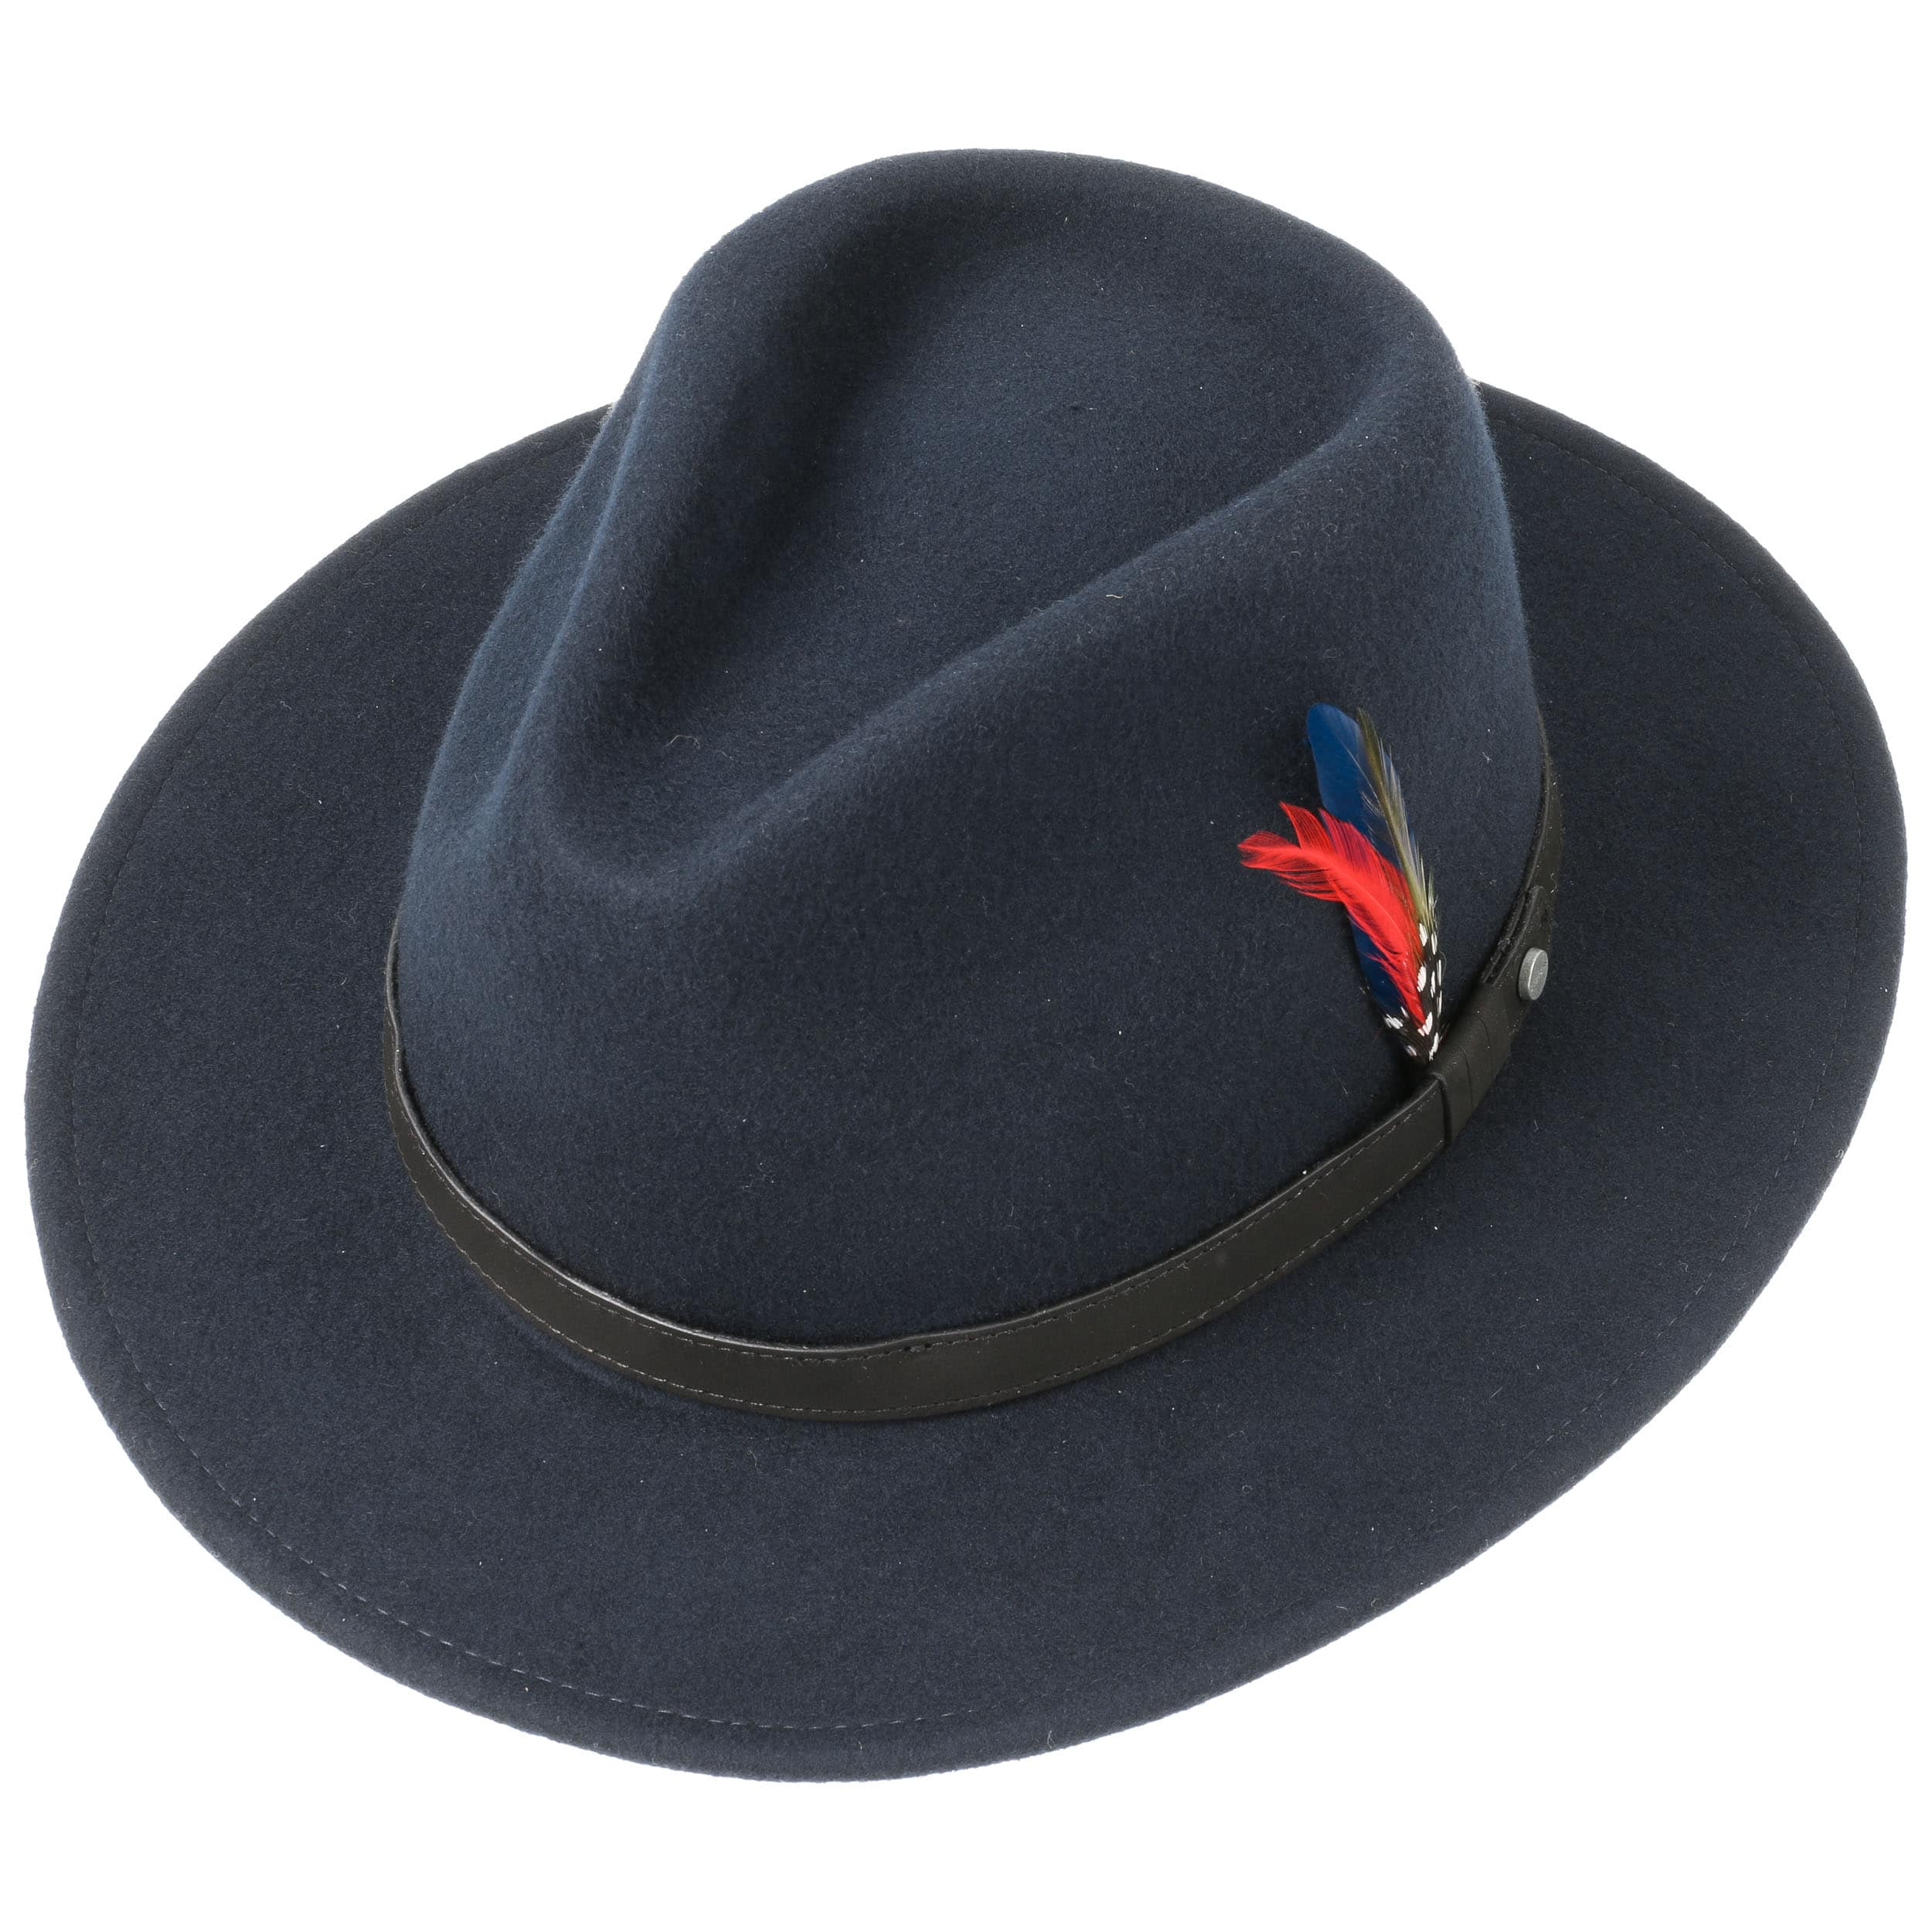 12a40558a2e76 Yutan Wool Hat by Stetson - navy 1 ...